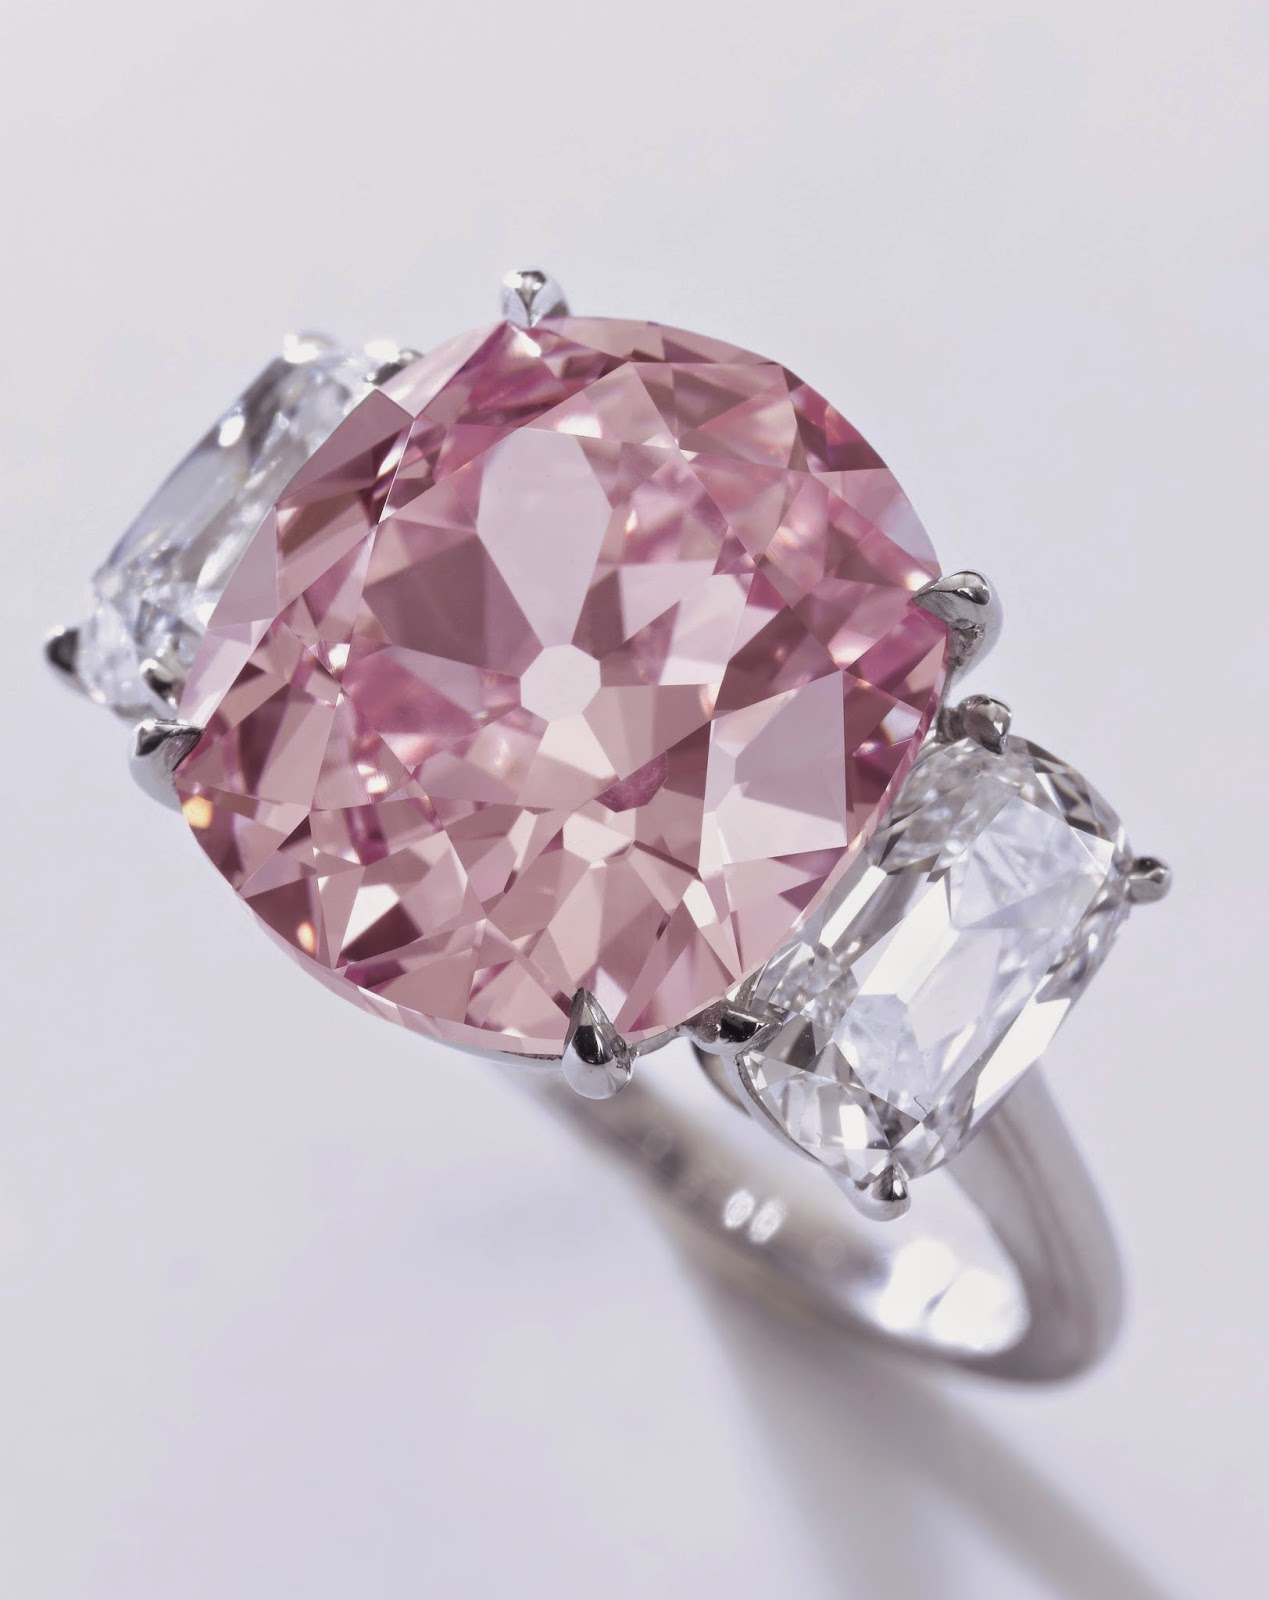 Historic Pink Diamond And 25 Carat Cartier Ruby Could Each Fetch 18 Million At Sothebys Geneva